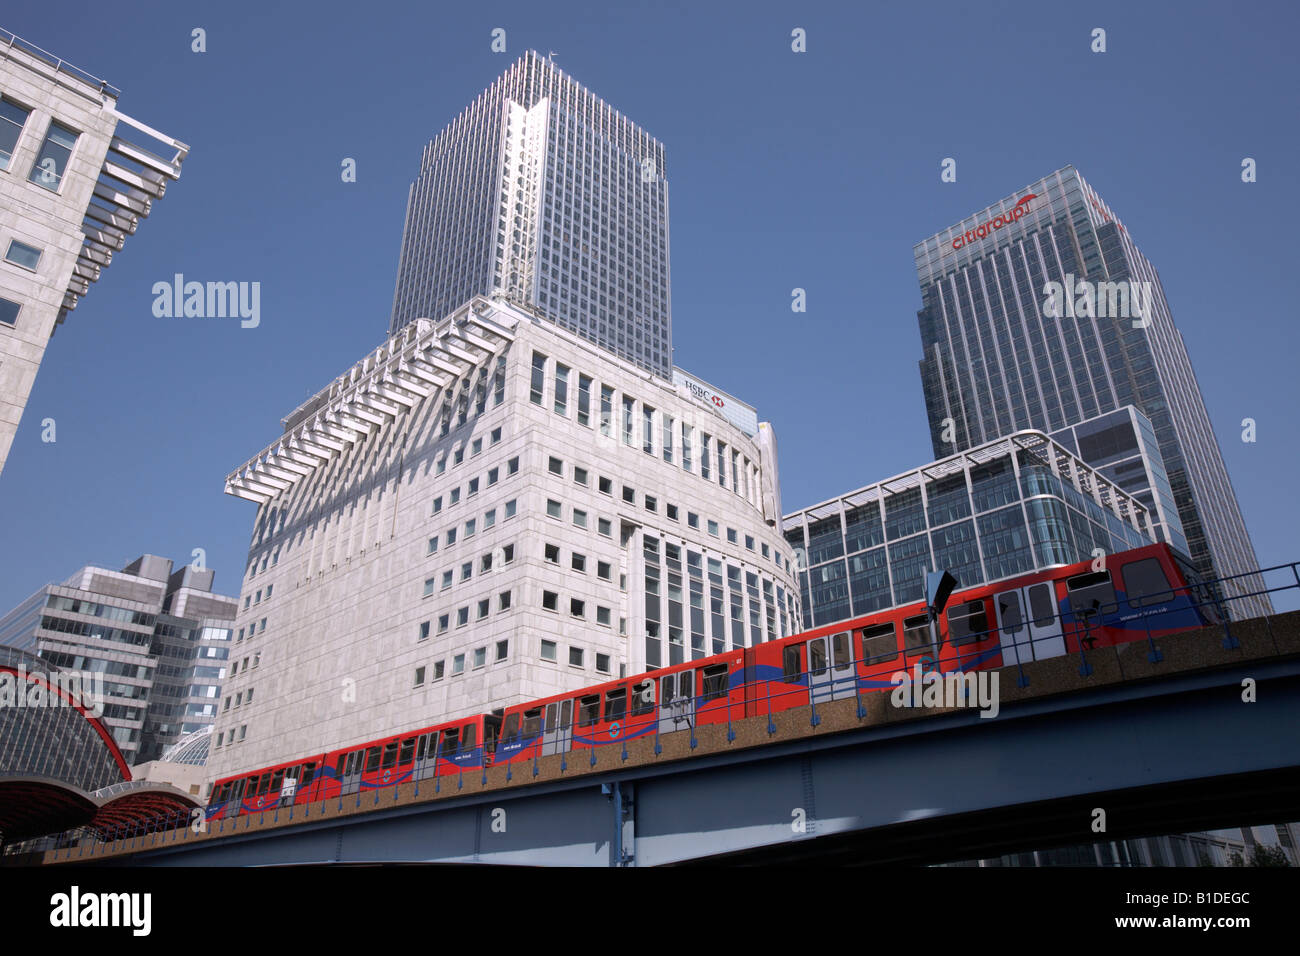 Canary Wharf and the Docklands Light Railway, London, England - Stock Image